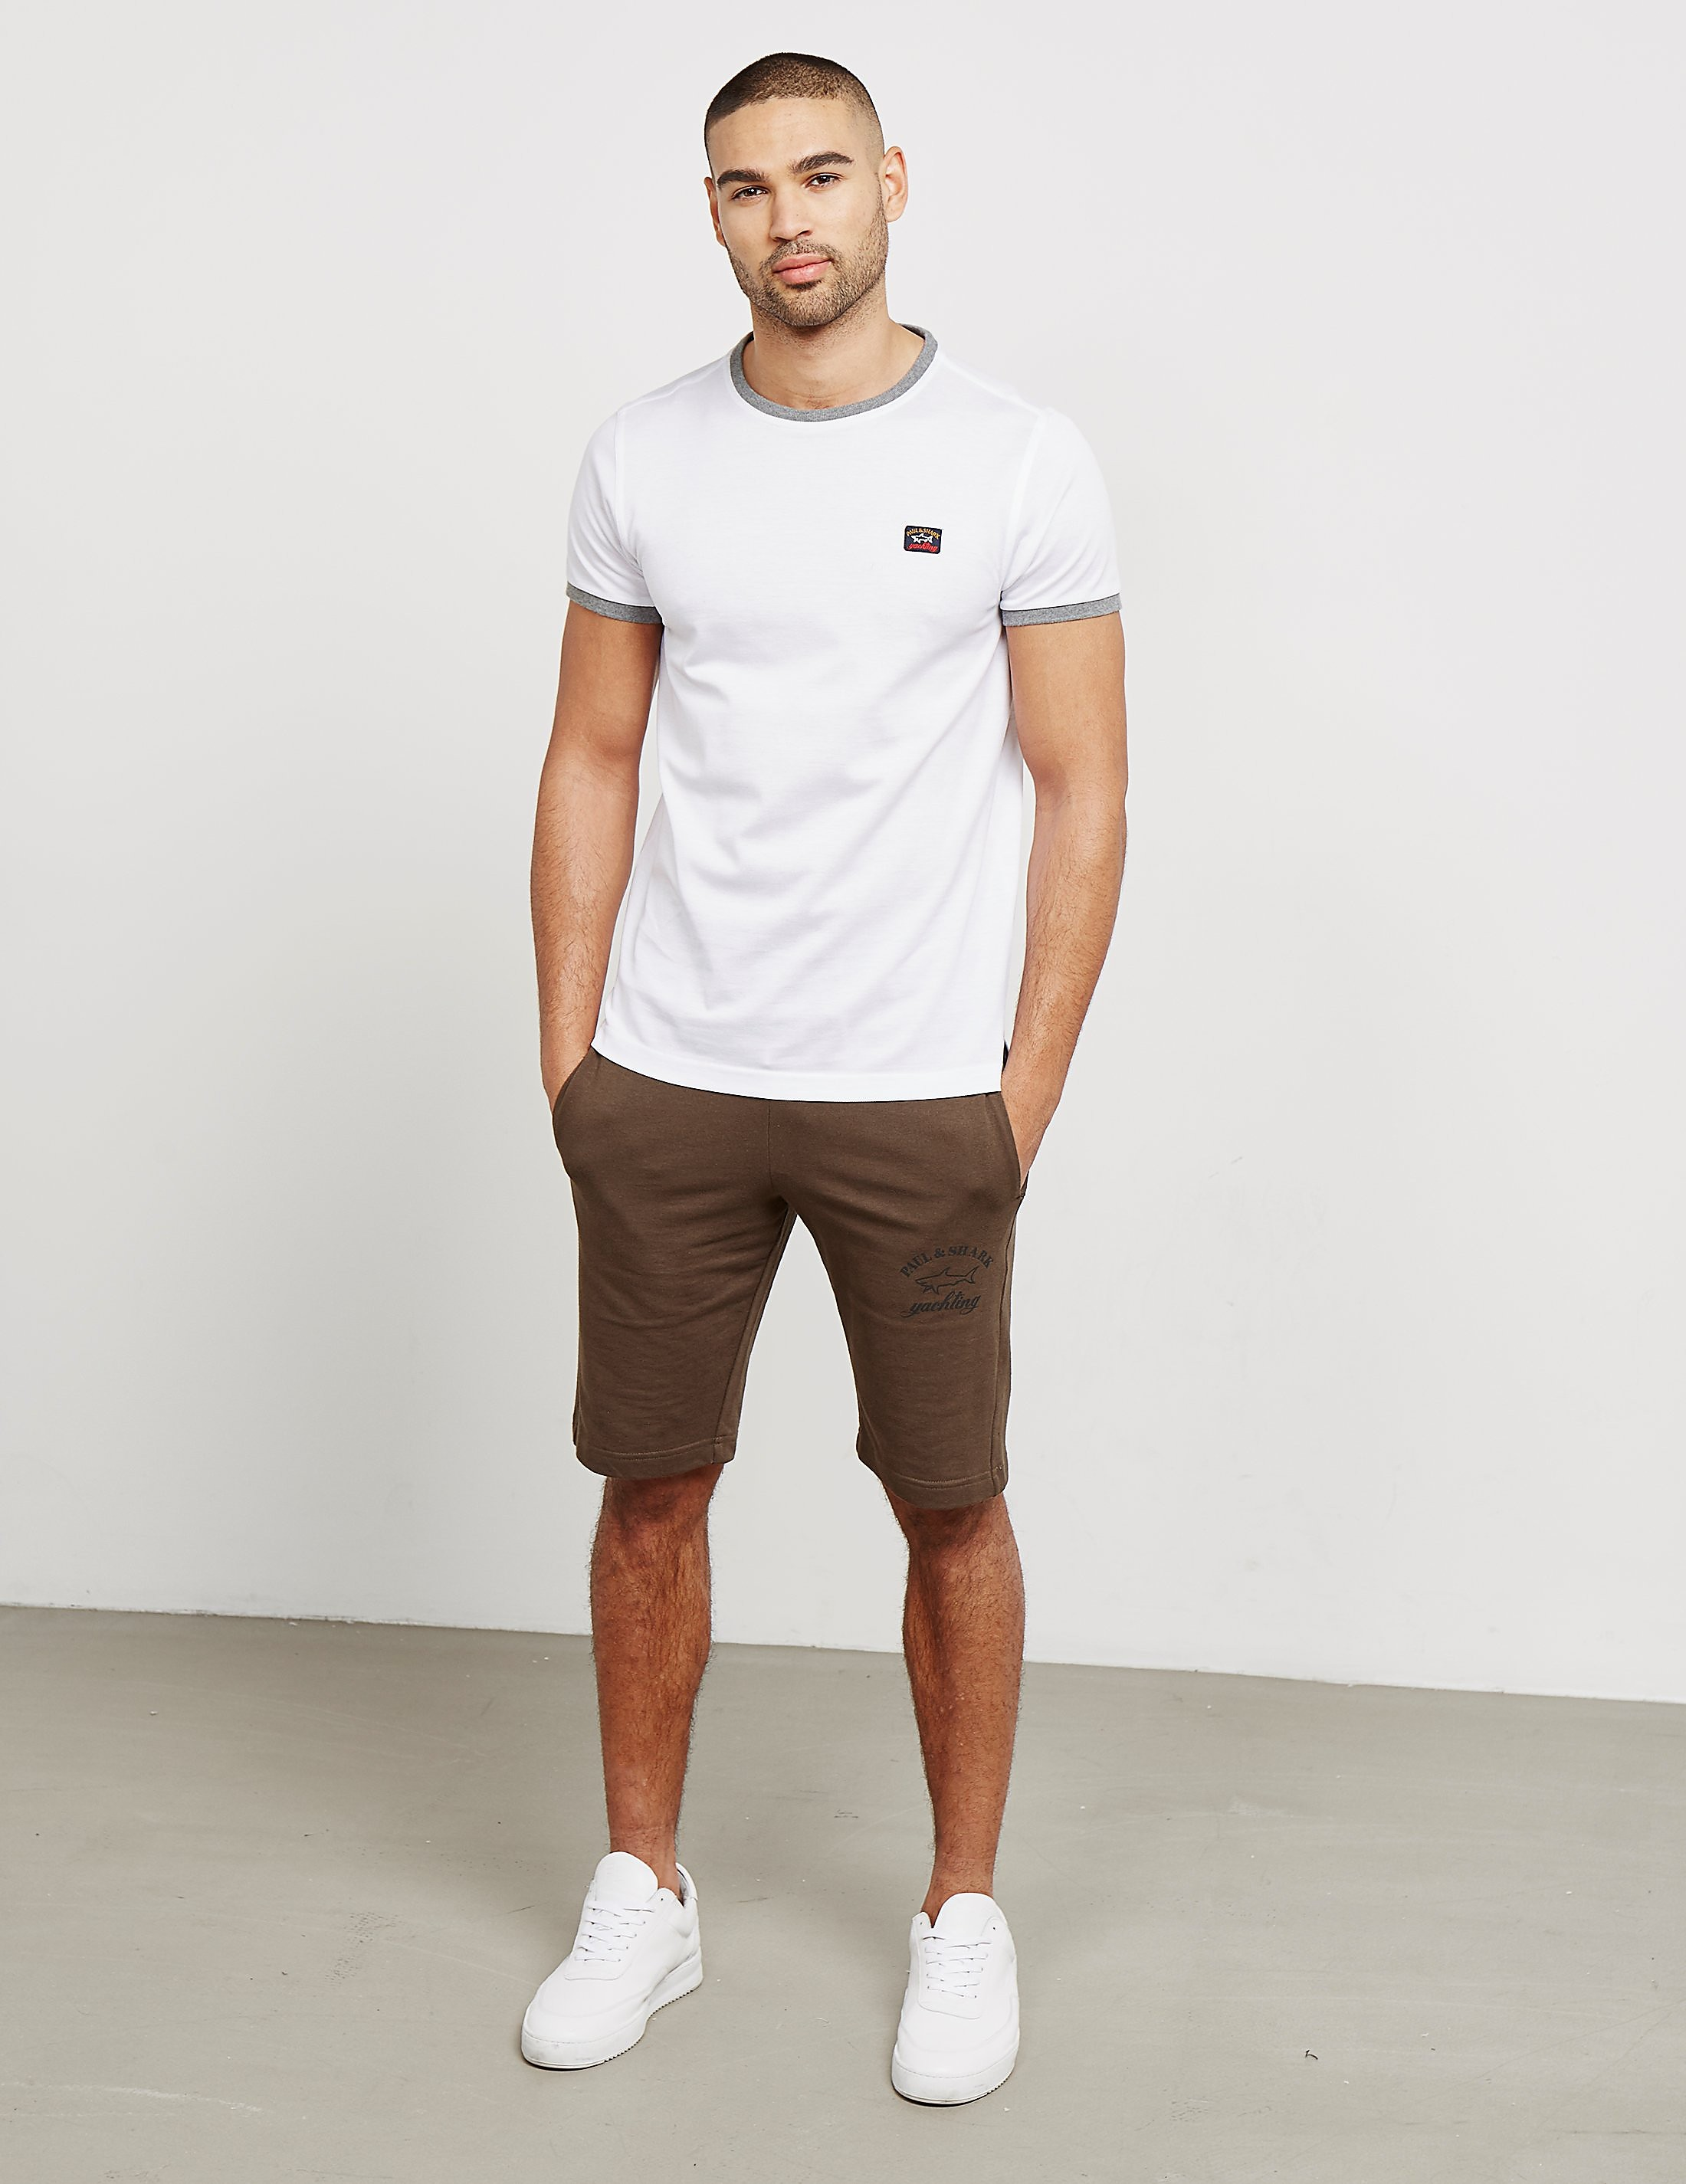 Paul and Shark Ringer Short Sleeve T-Shirt - Exclusive